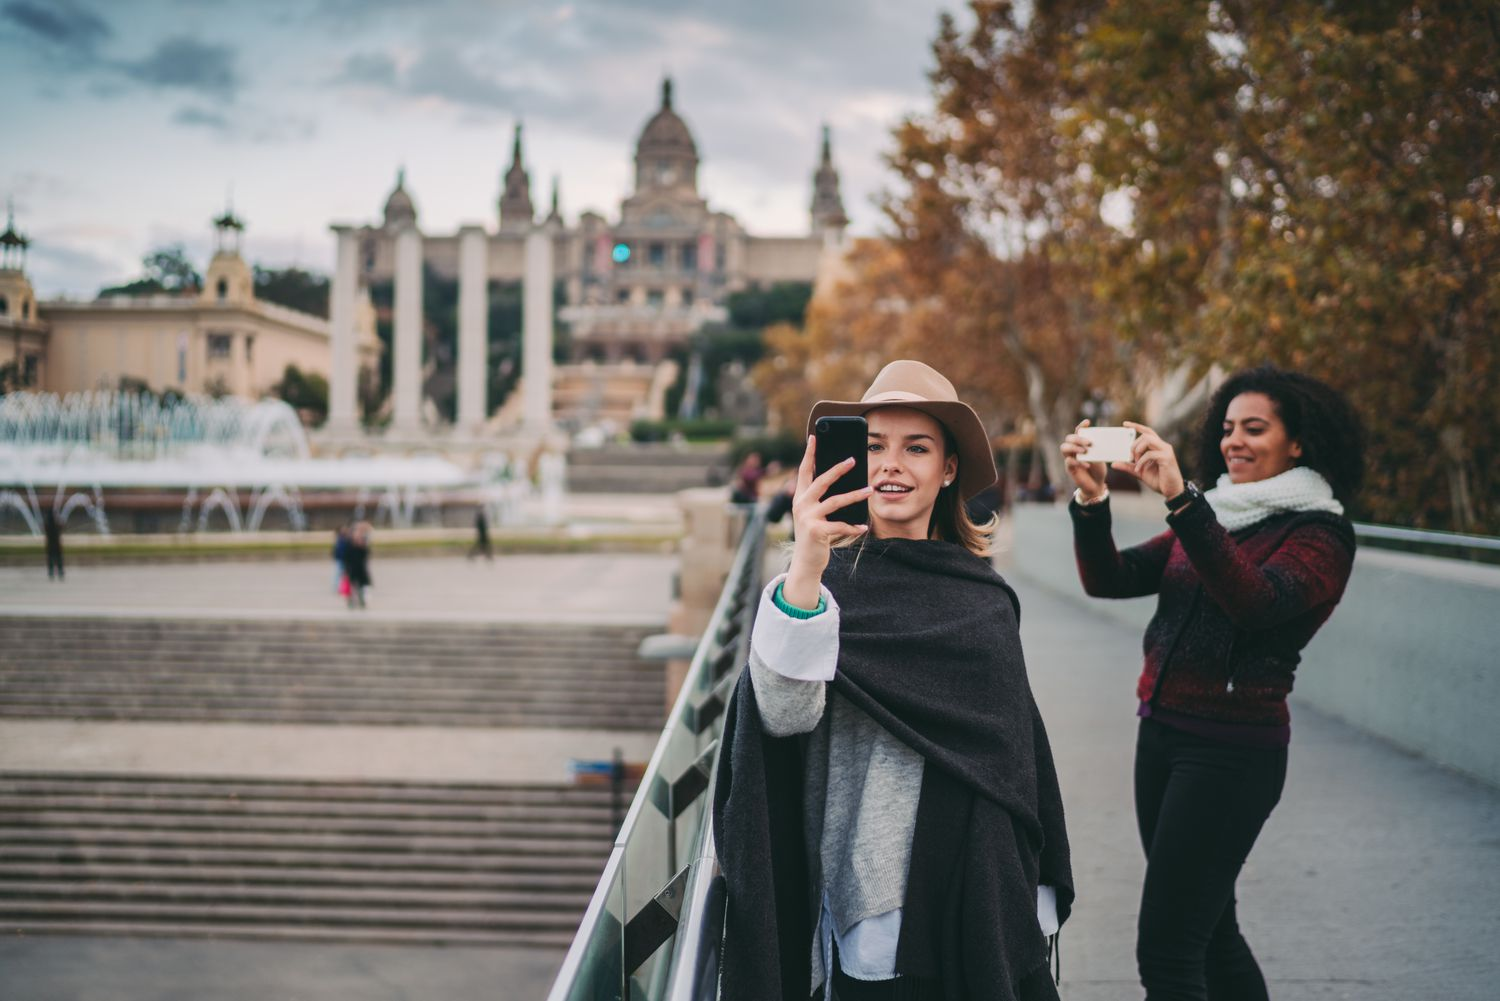 Girls taking pictures at Montjuic Castle in Barcelona